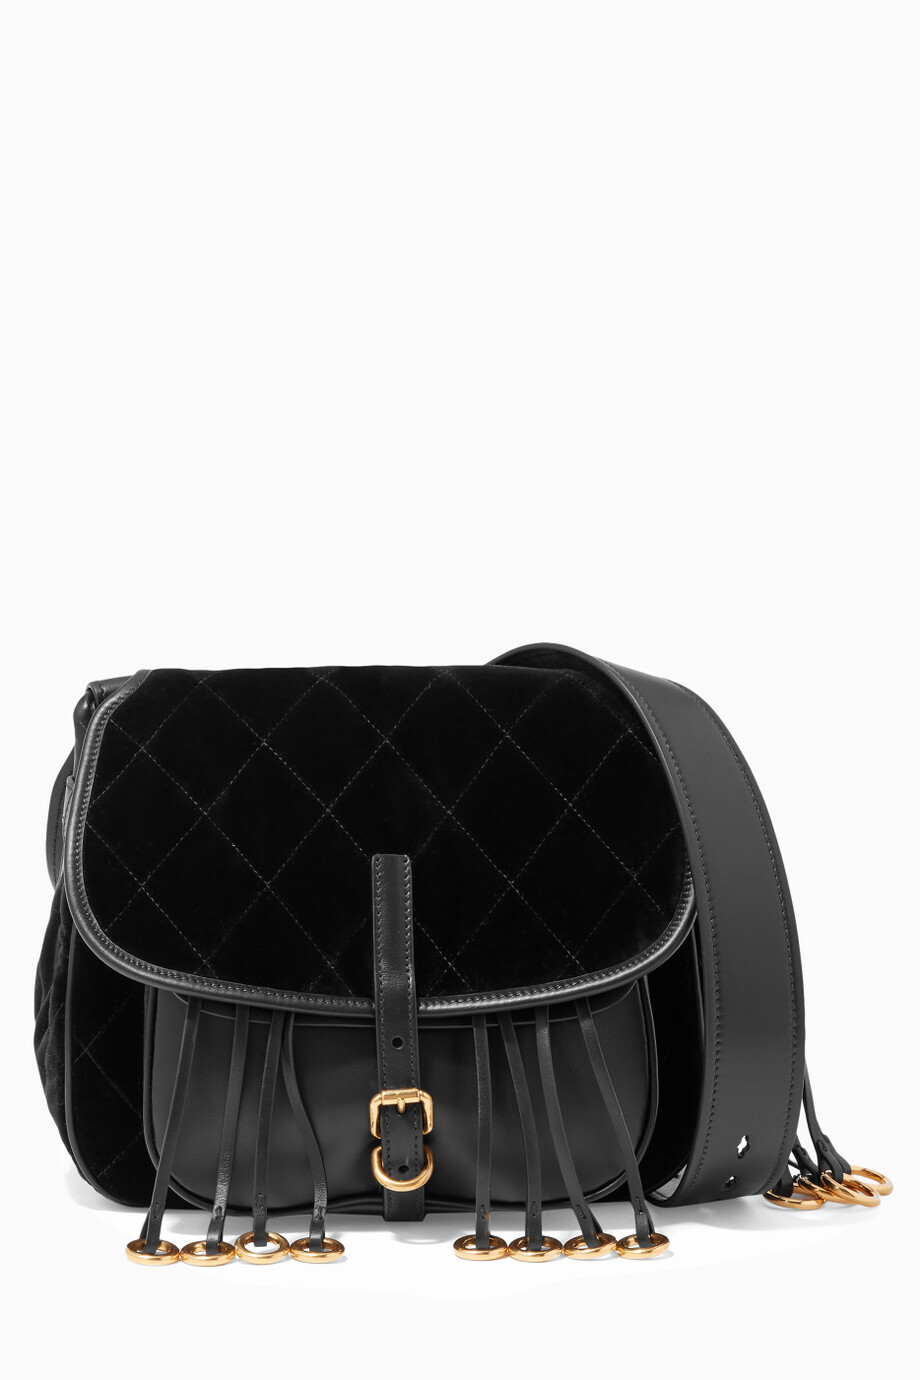 8f4e5473d5a1 Shop Prada Black Black Quilted-Velvet & Leather Corsaire Shoulder Bag for  Women | Ounass UAE